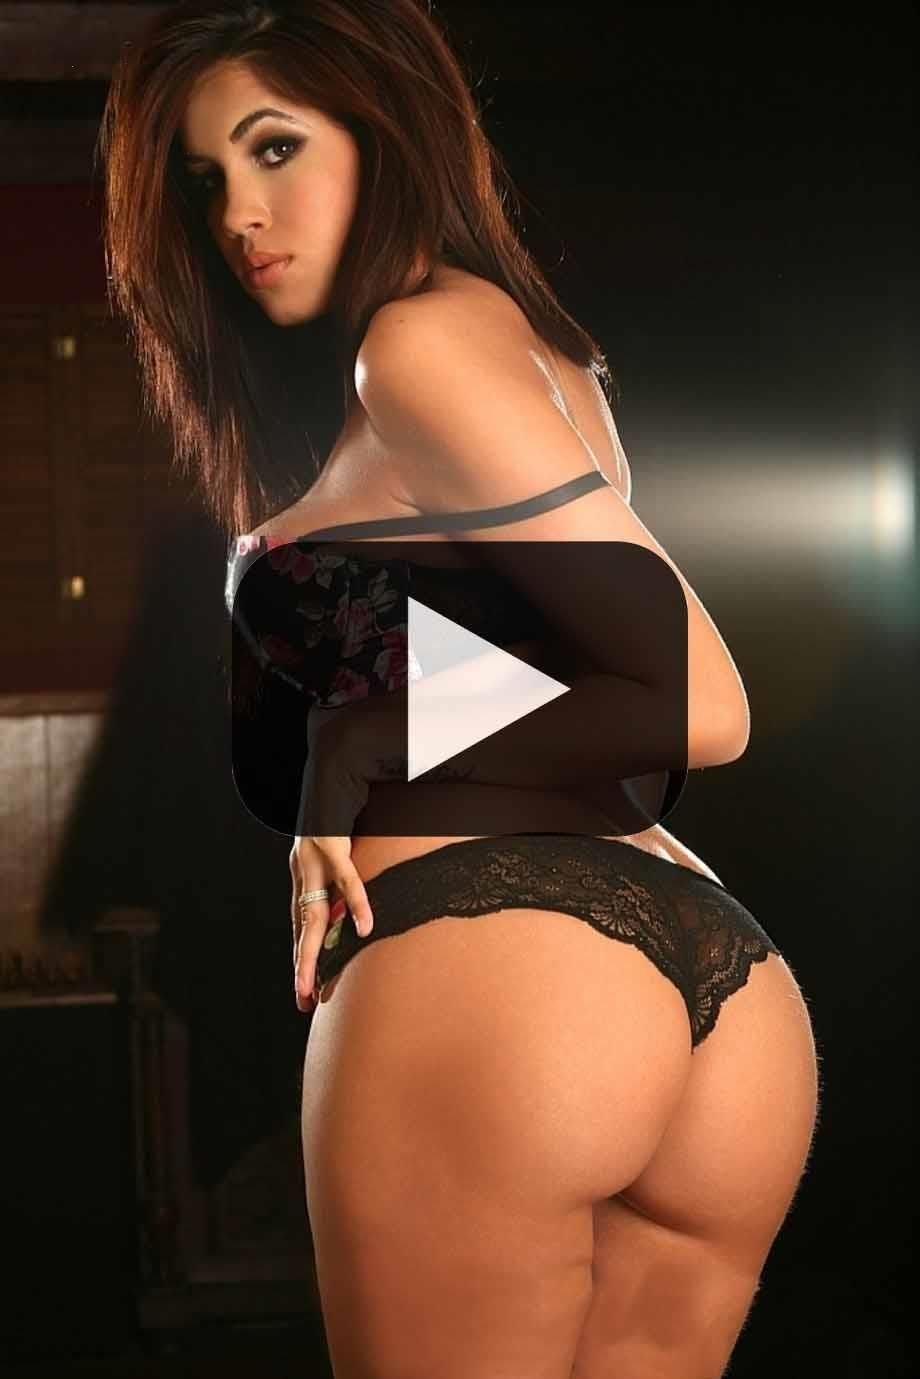 freeporn tube. free adult dating sight. Nude Videos Click here. #mobile # adult #dating #site